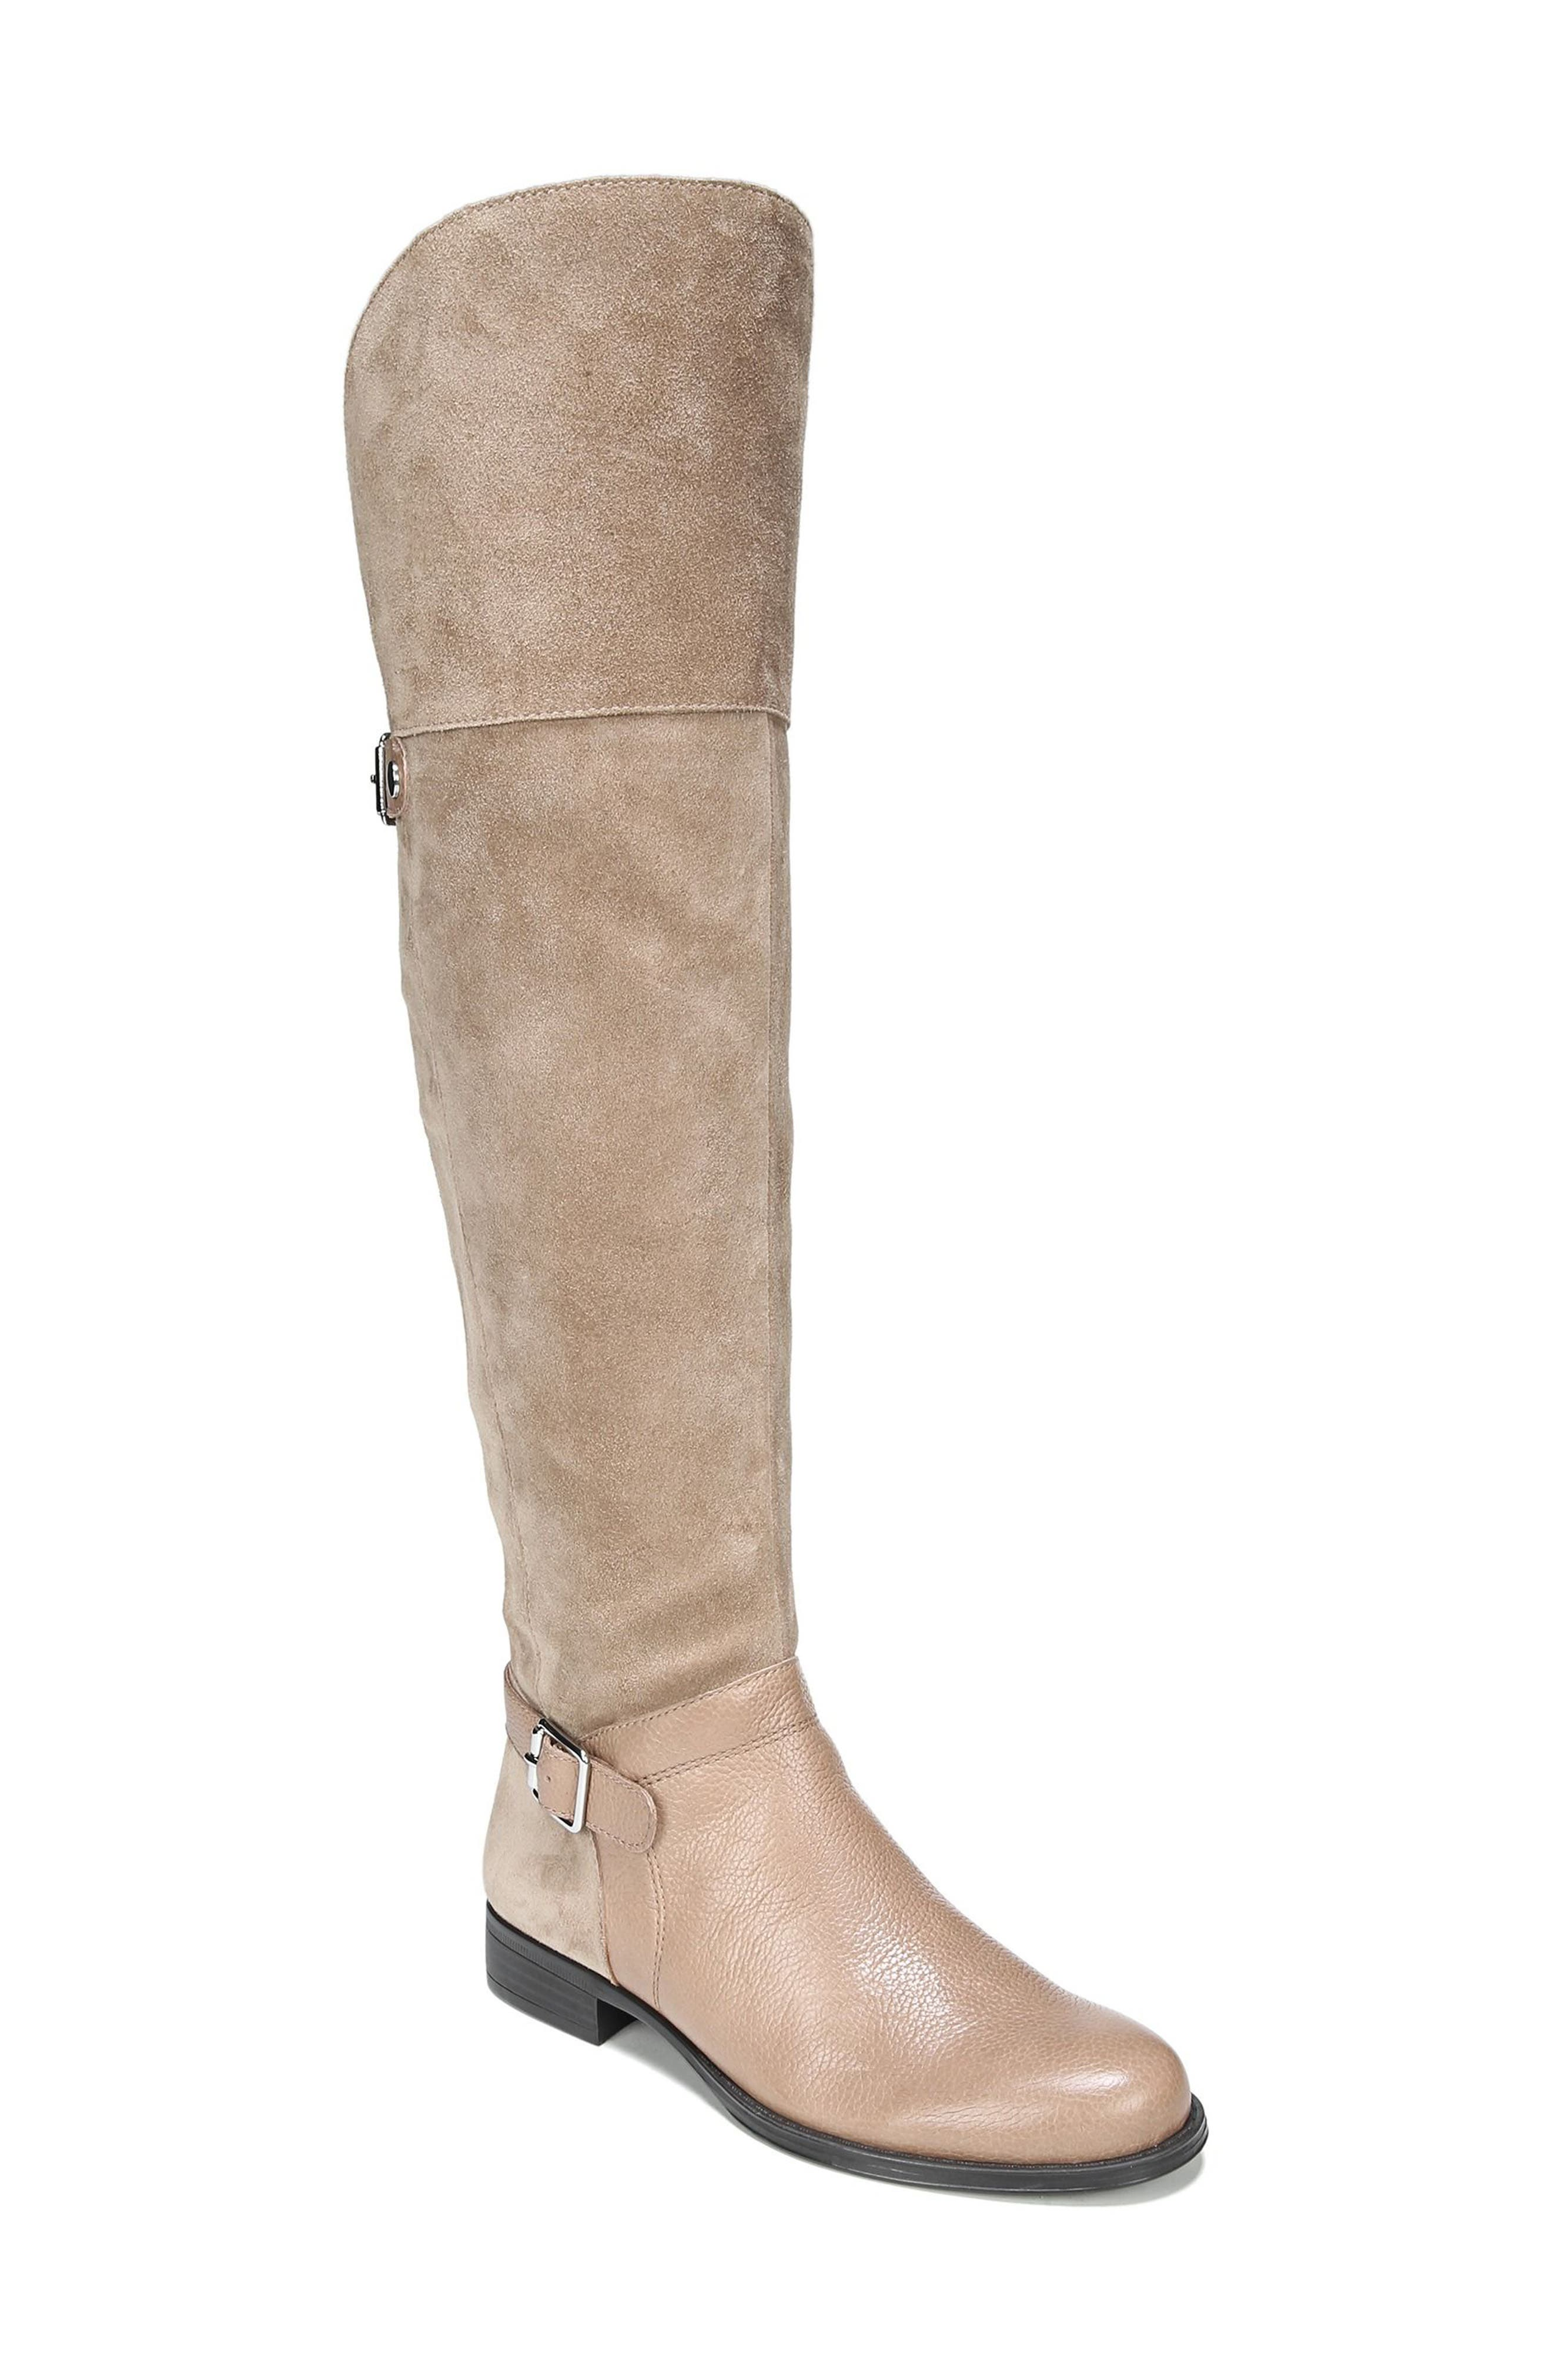 January Over the Knee High Boot,                         Main,                         color, Beige Leather